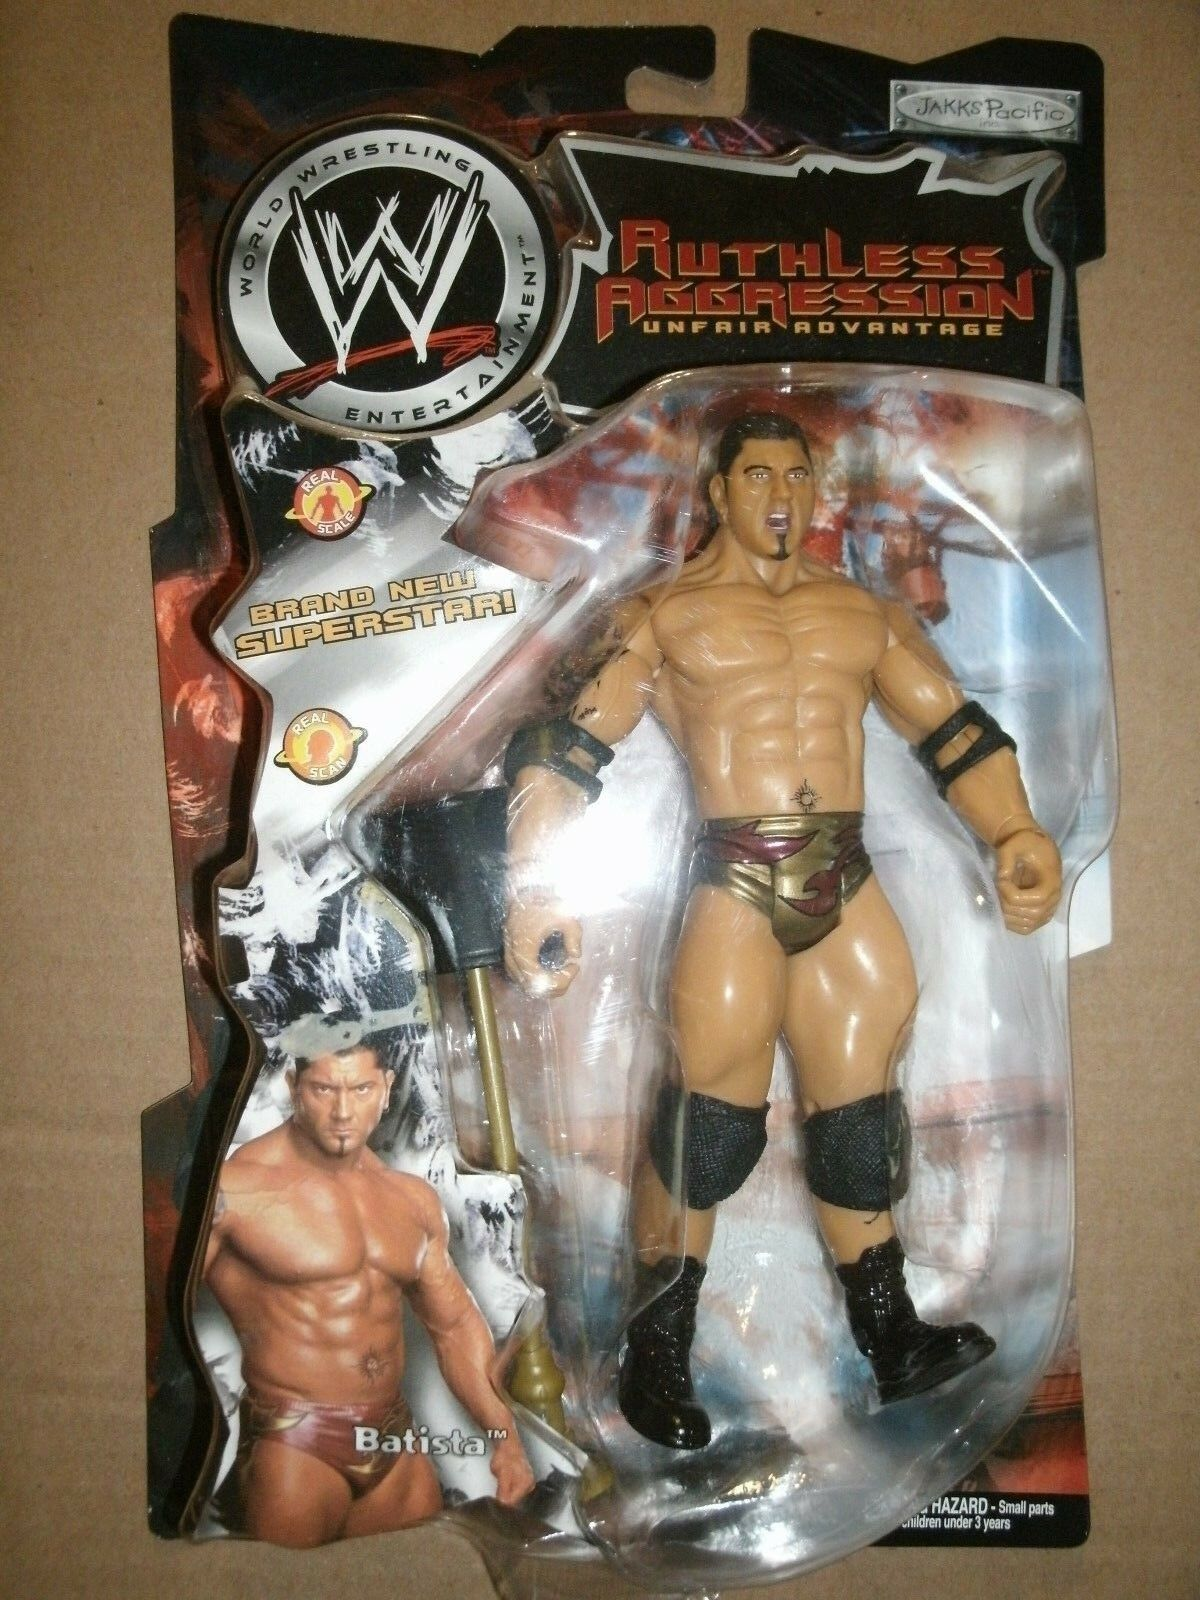 WWE BATISTA RUTHLESS RUTHLESS RUTHLESS AGGRESSION WRESTLING FIGURE 7c0d20